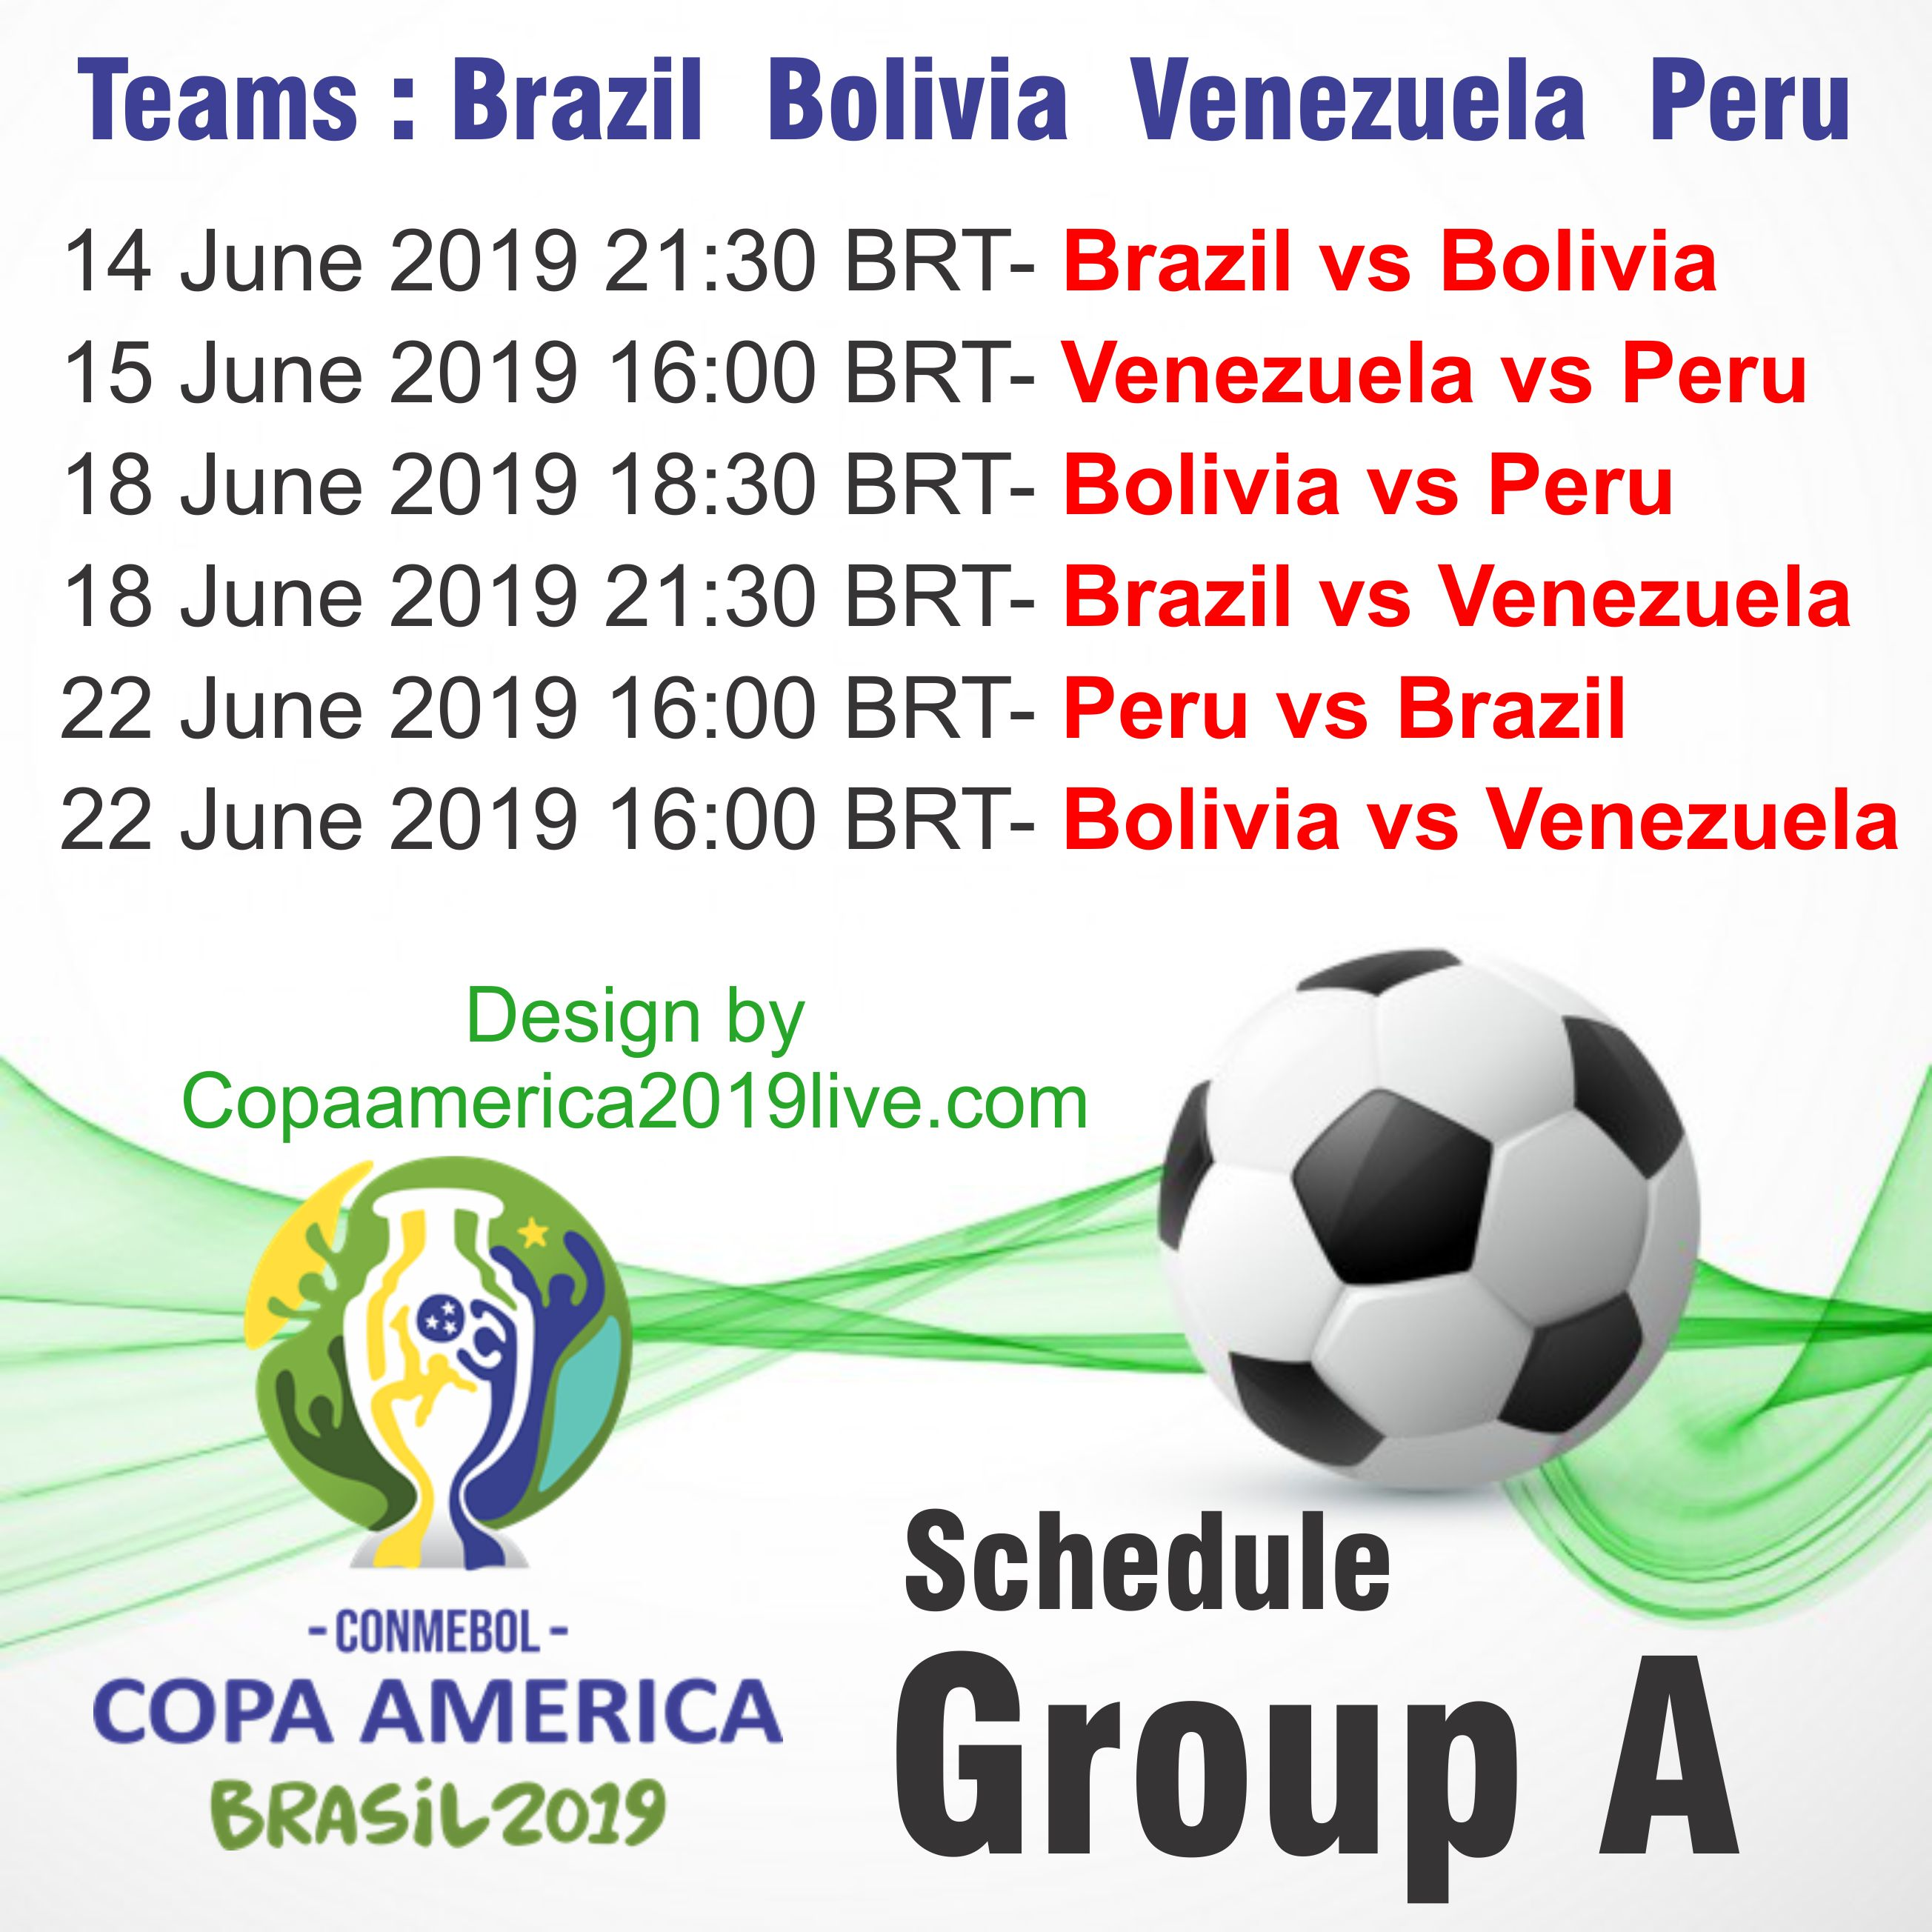 Copa America 2019 Group A Schedule wall chart